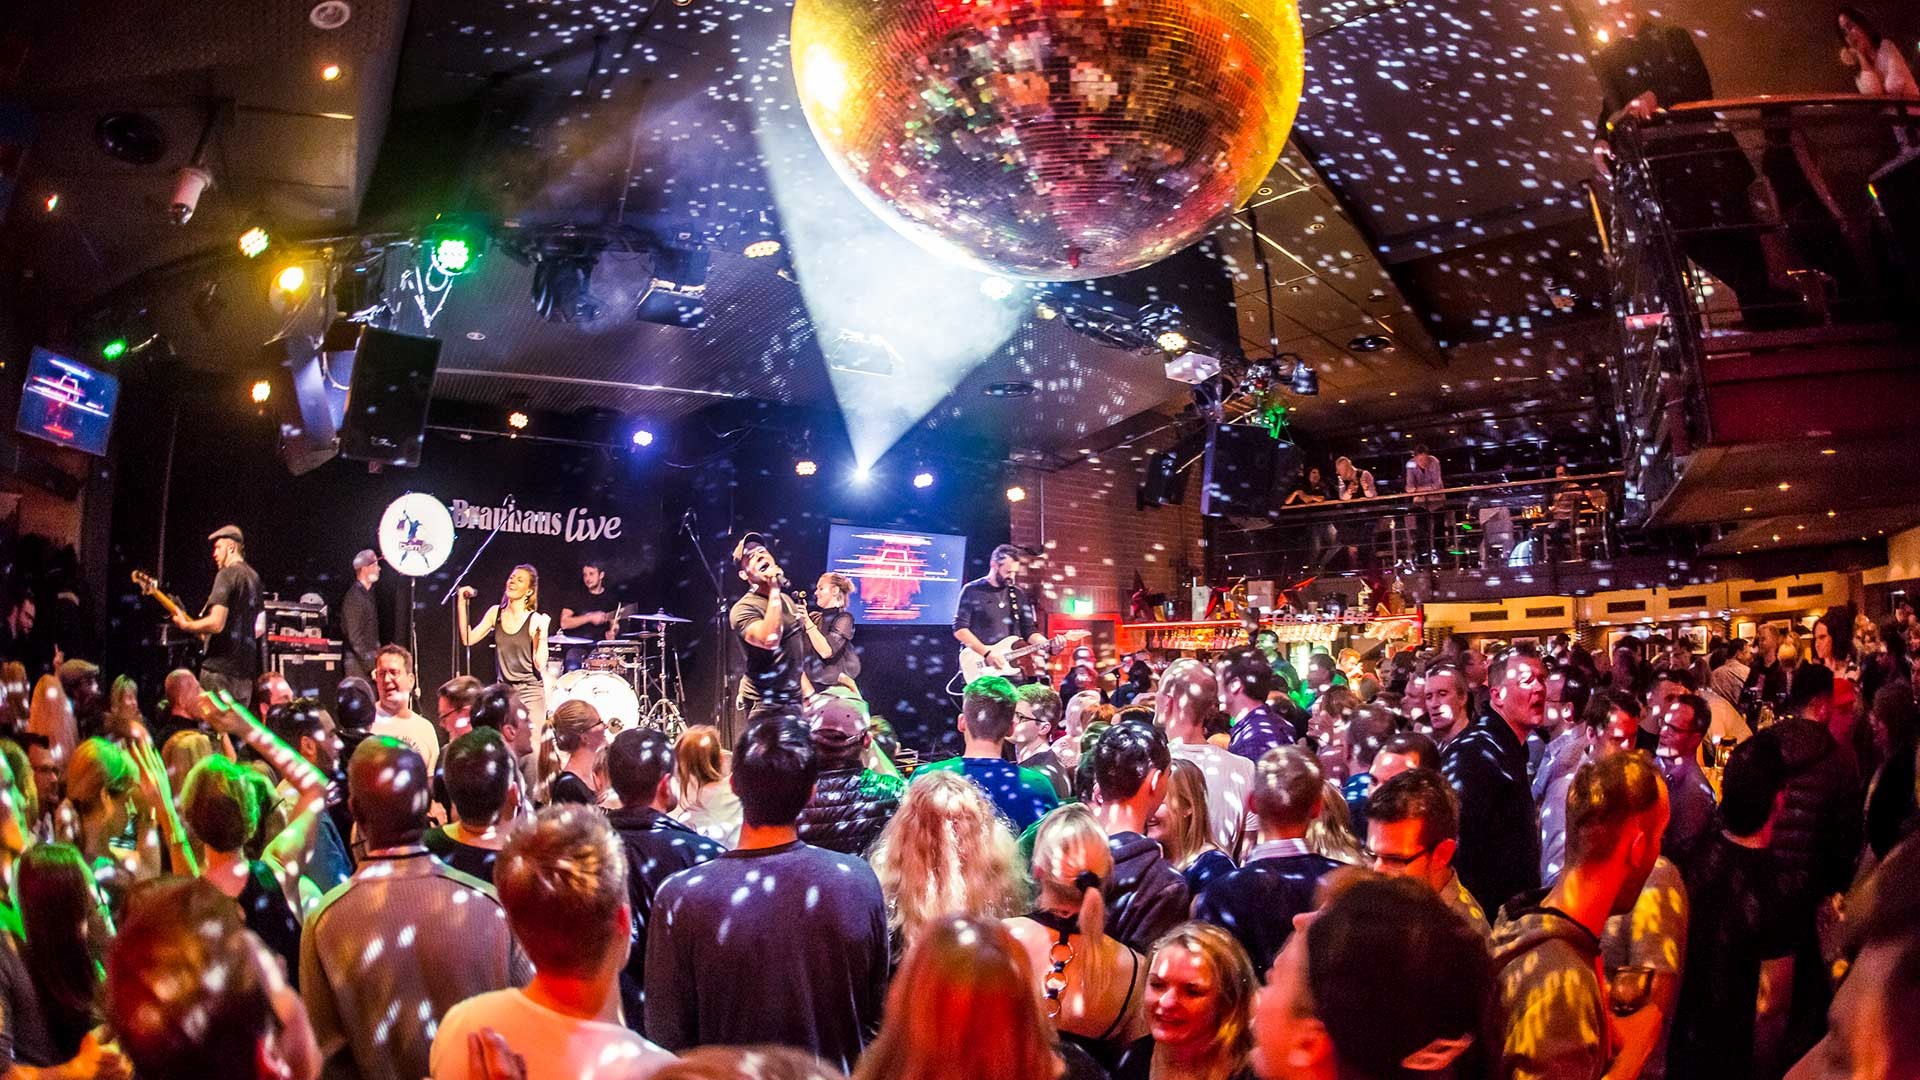 Live-Musik & Party in Hannover